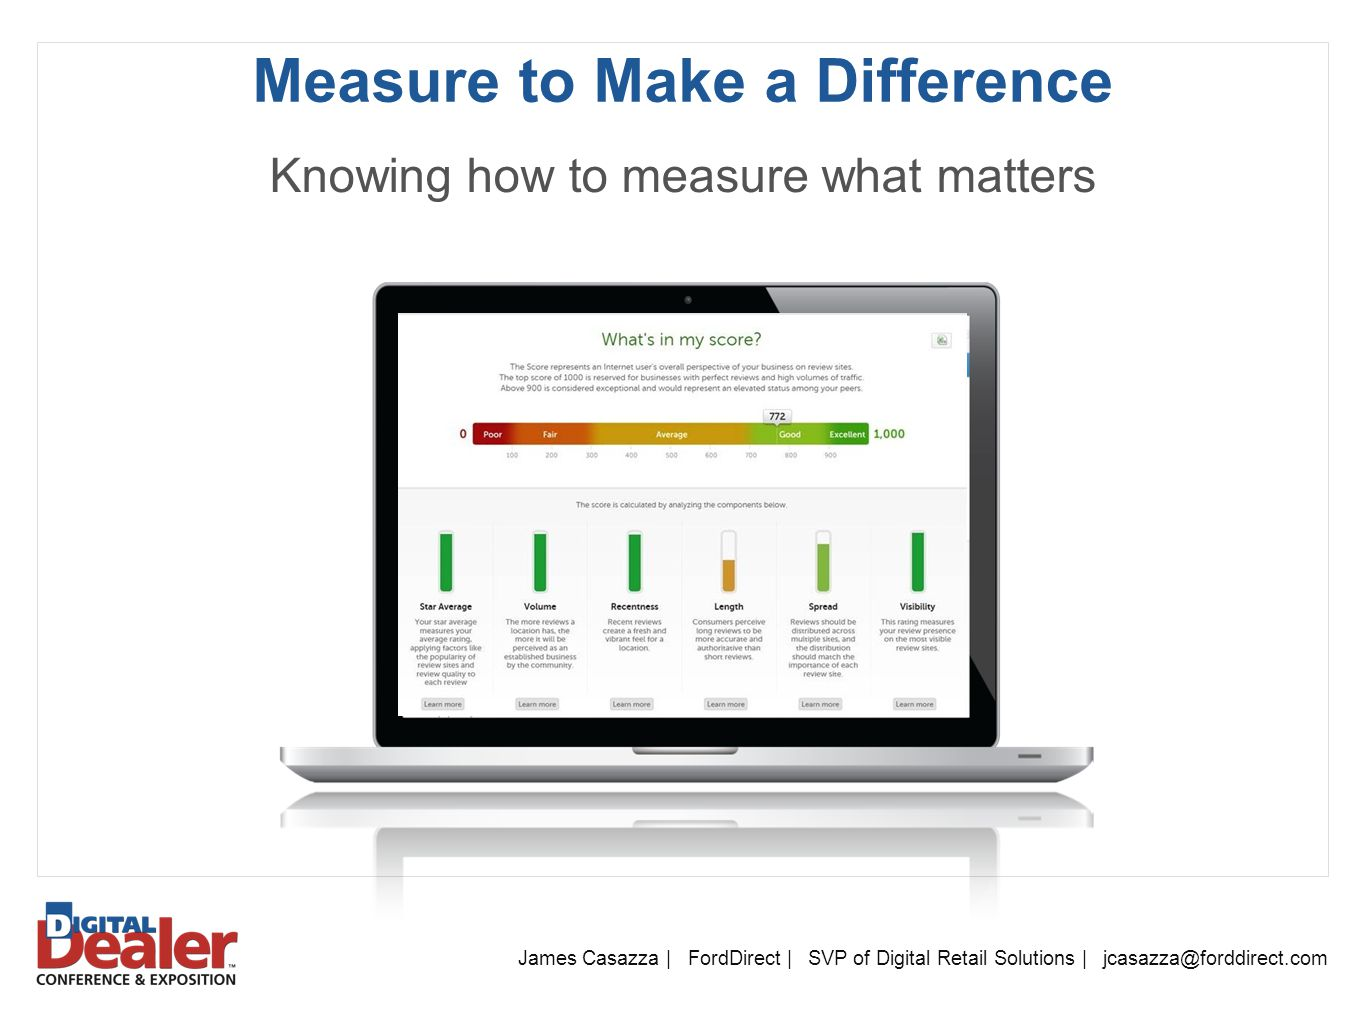 Measure to Make a Difference